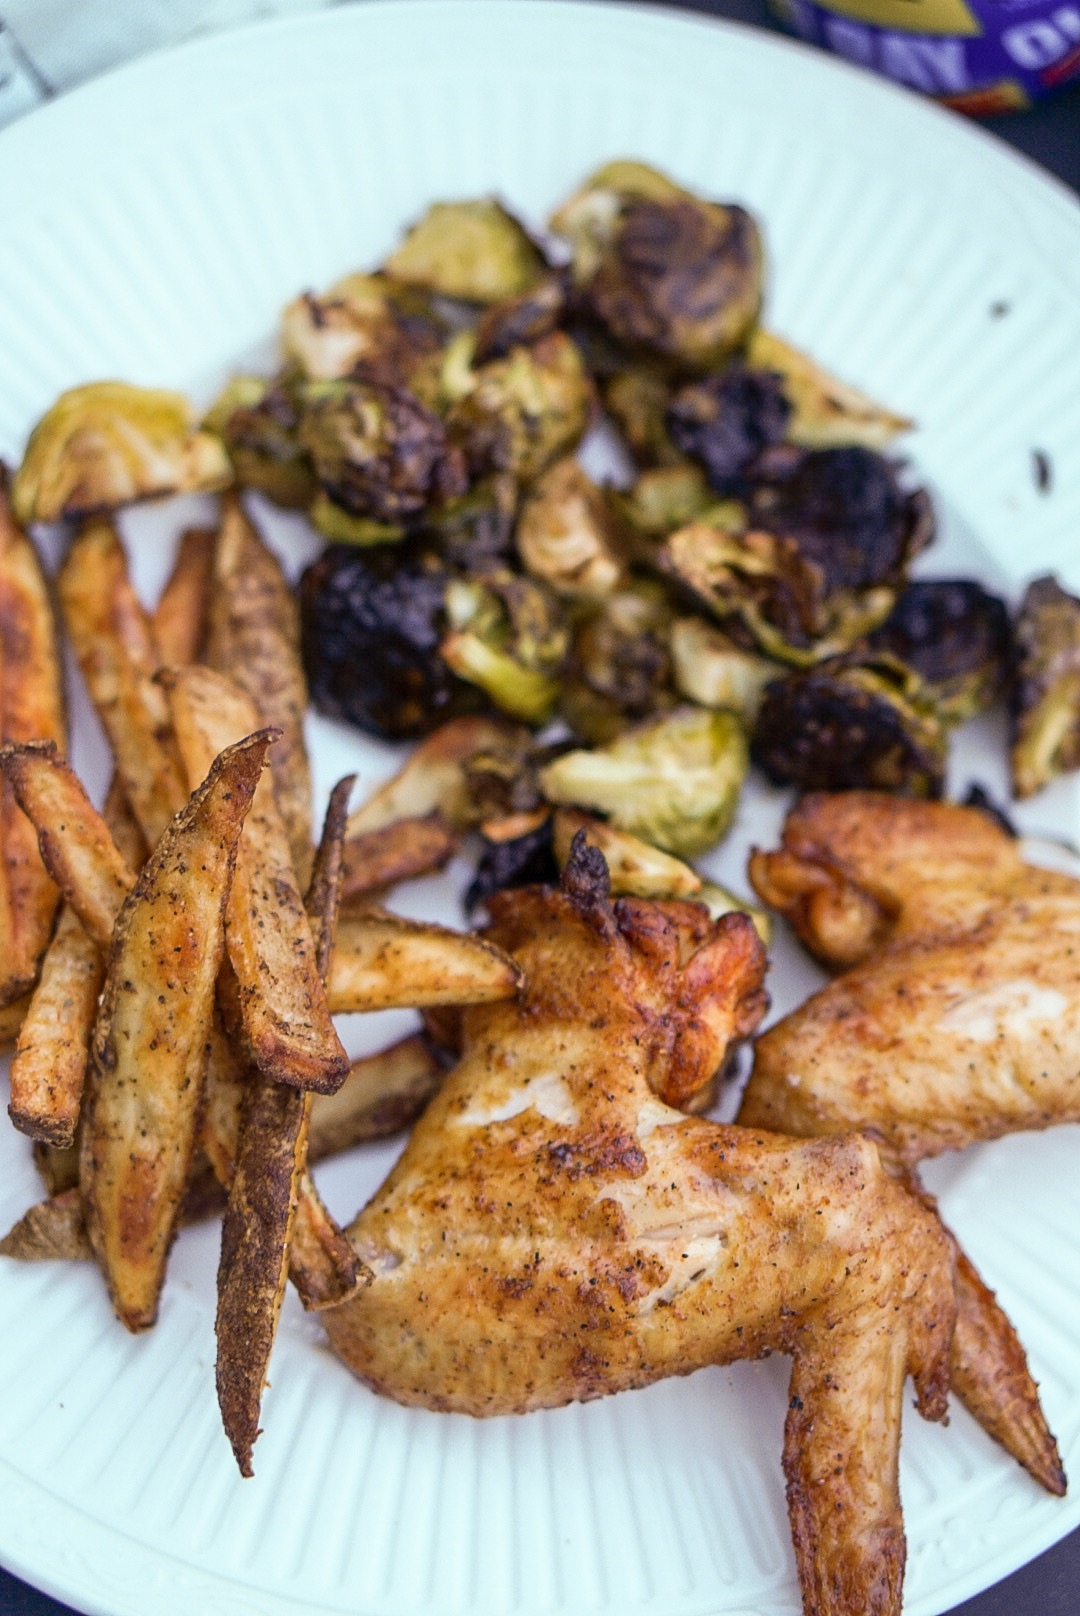 Chicken Wings on the Traeger Grill and Oven Roasted Fries and Vegetables